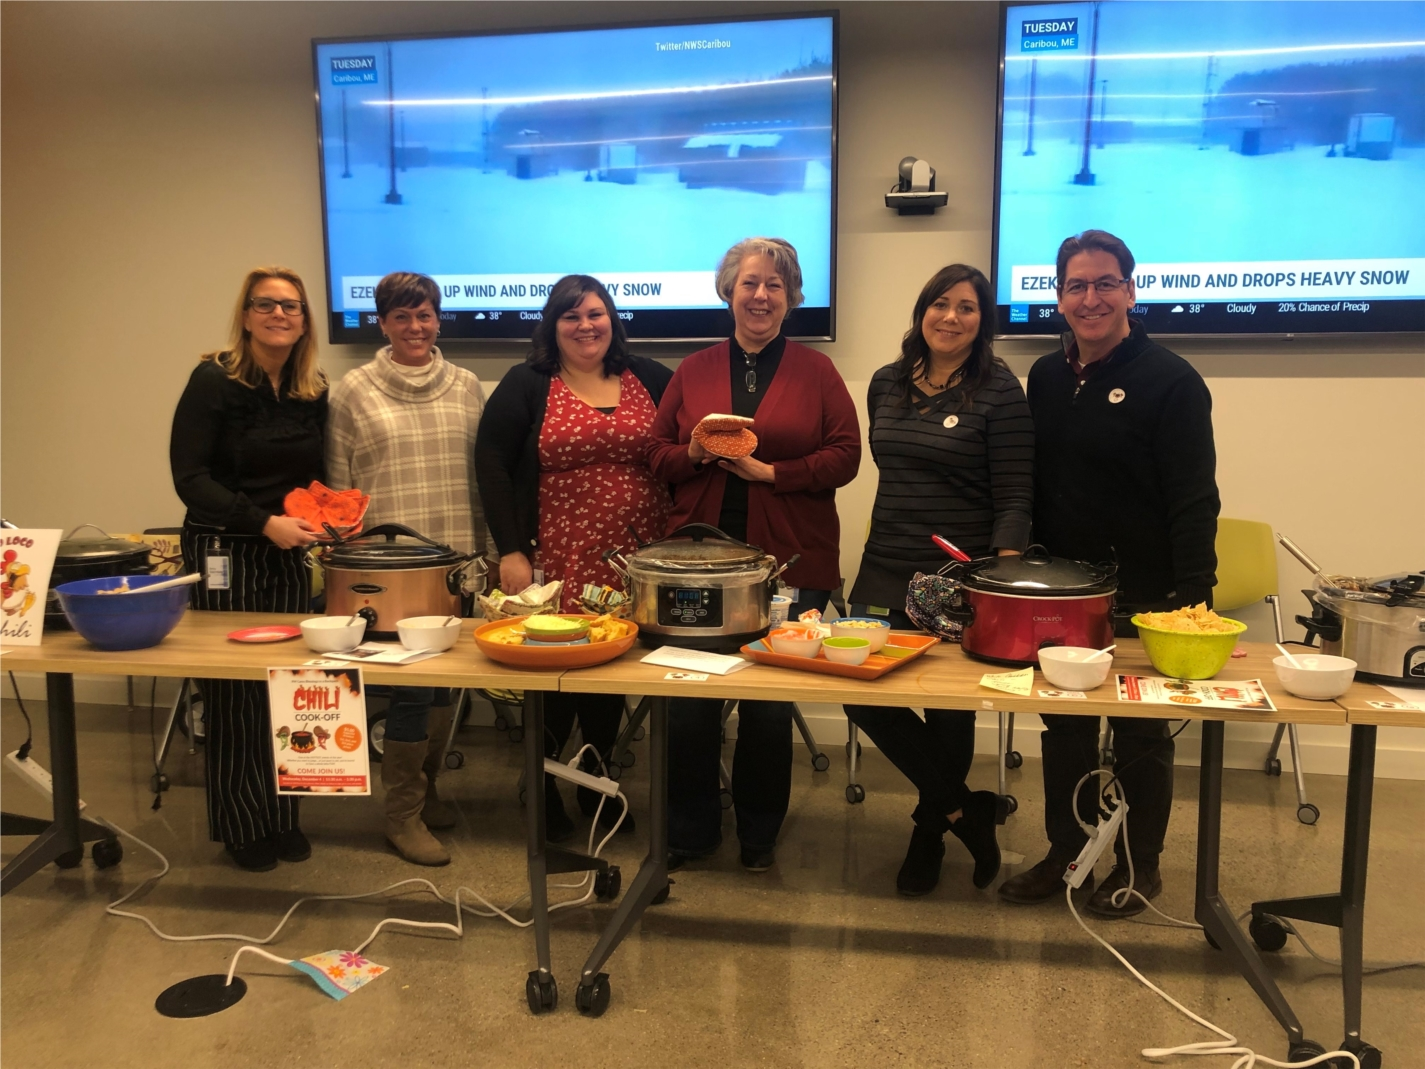 The annual chili cook-off is a fierce competition between the savory, spicy, and all around tastiest chilis in the office.